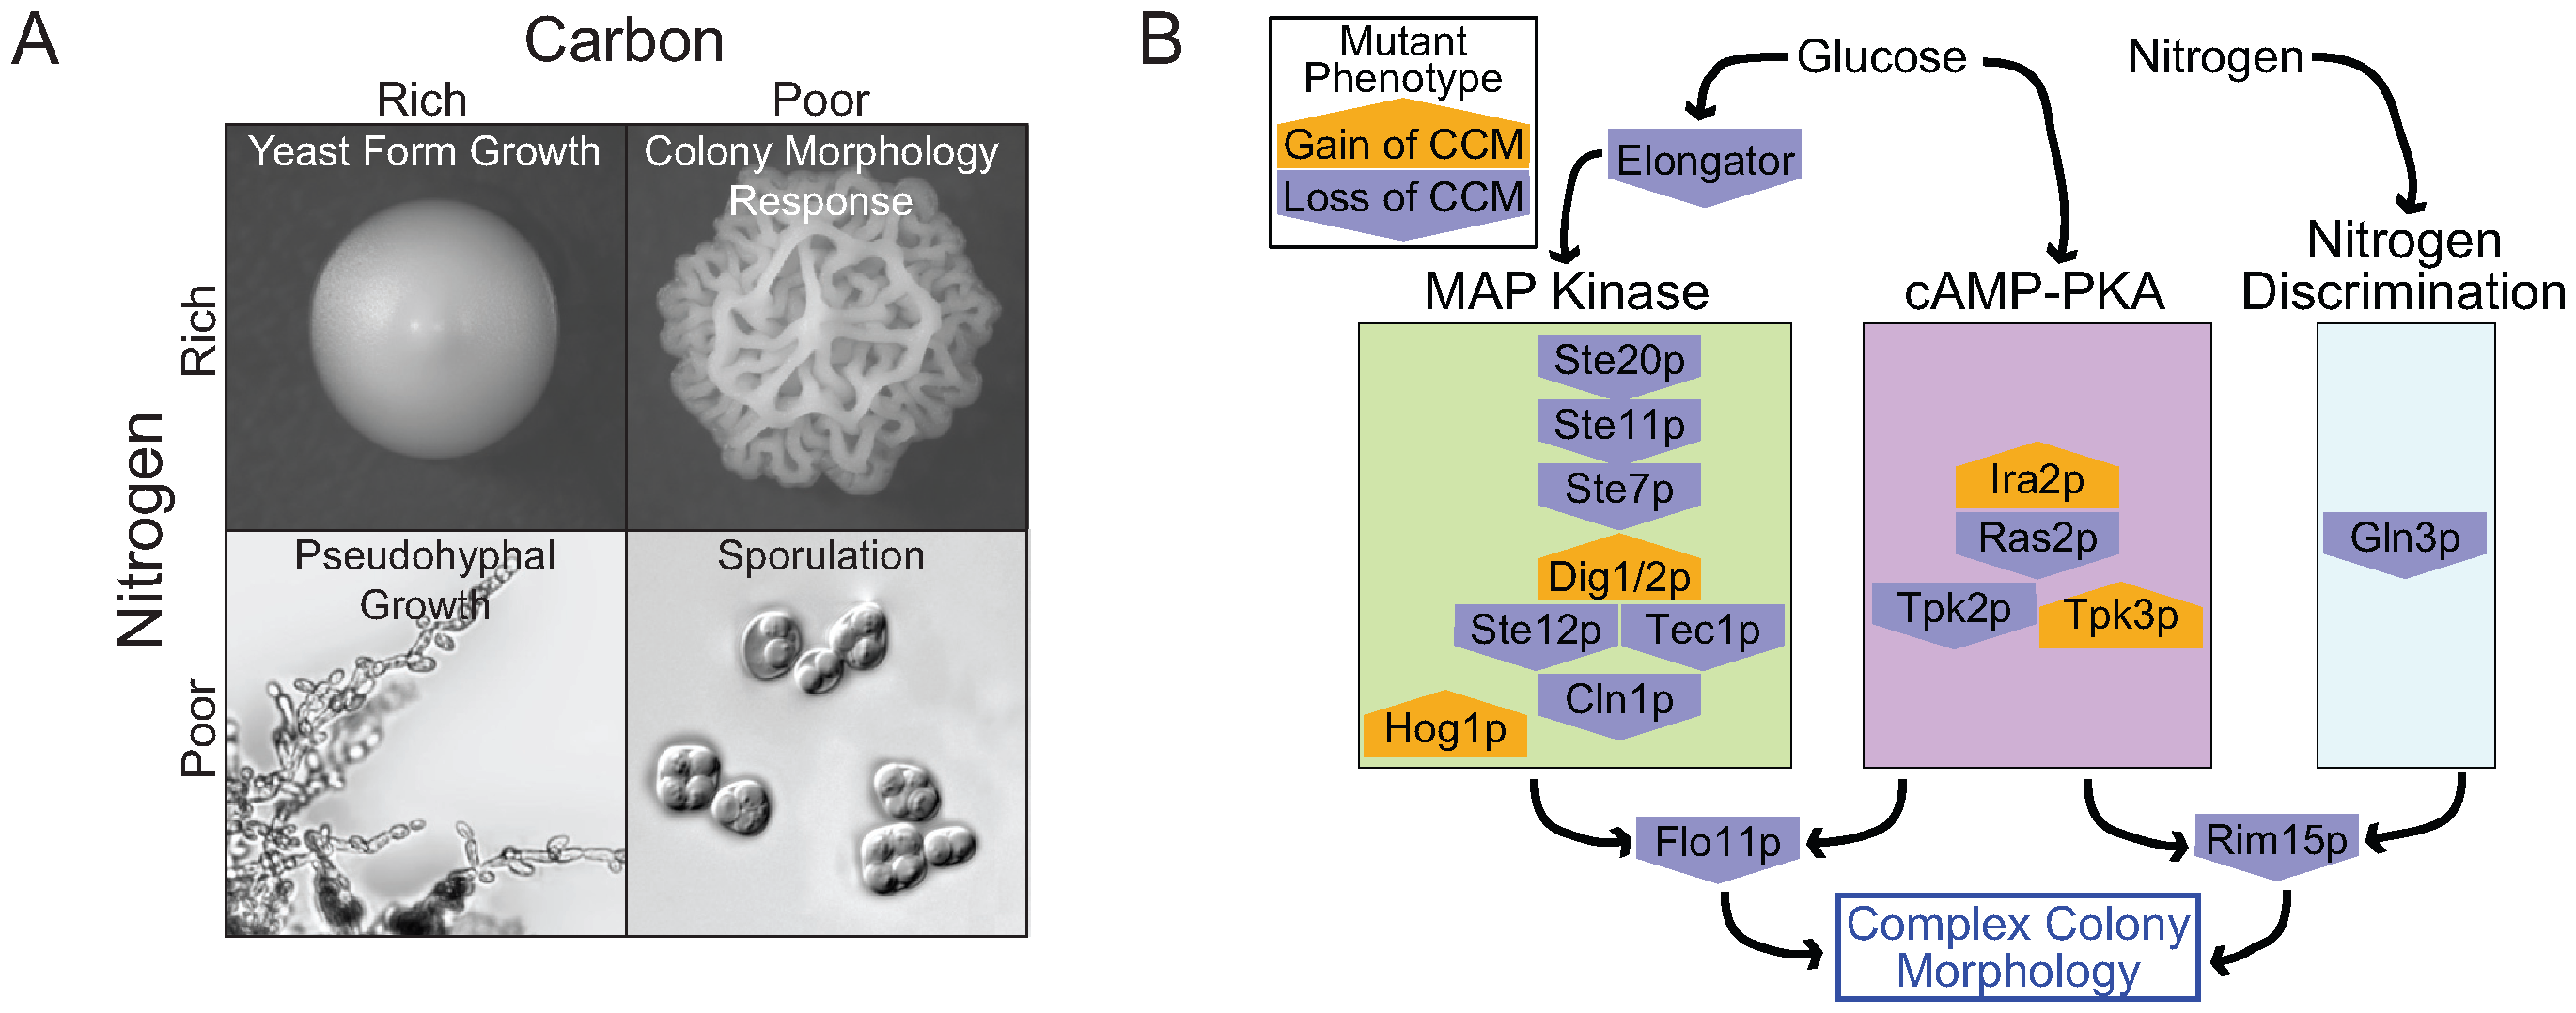 The role of nutrients in complex colony morphology and the underlying genetic network.